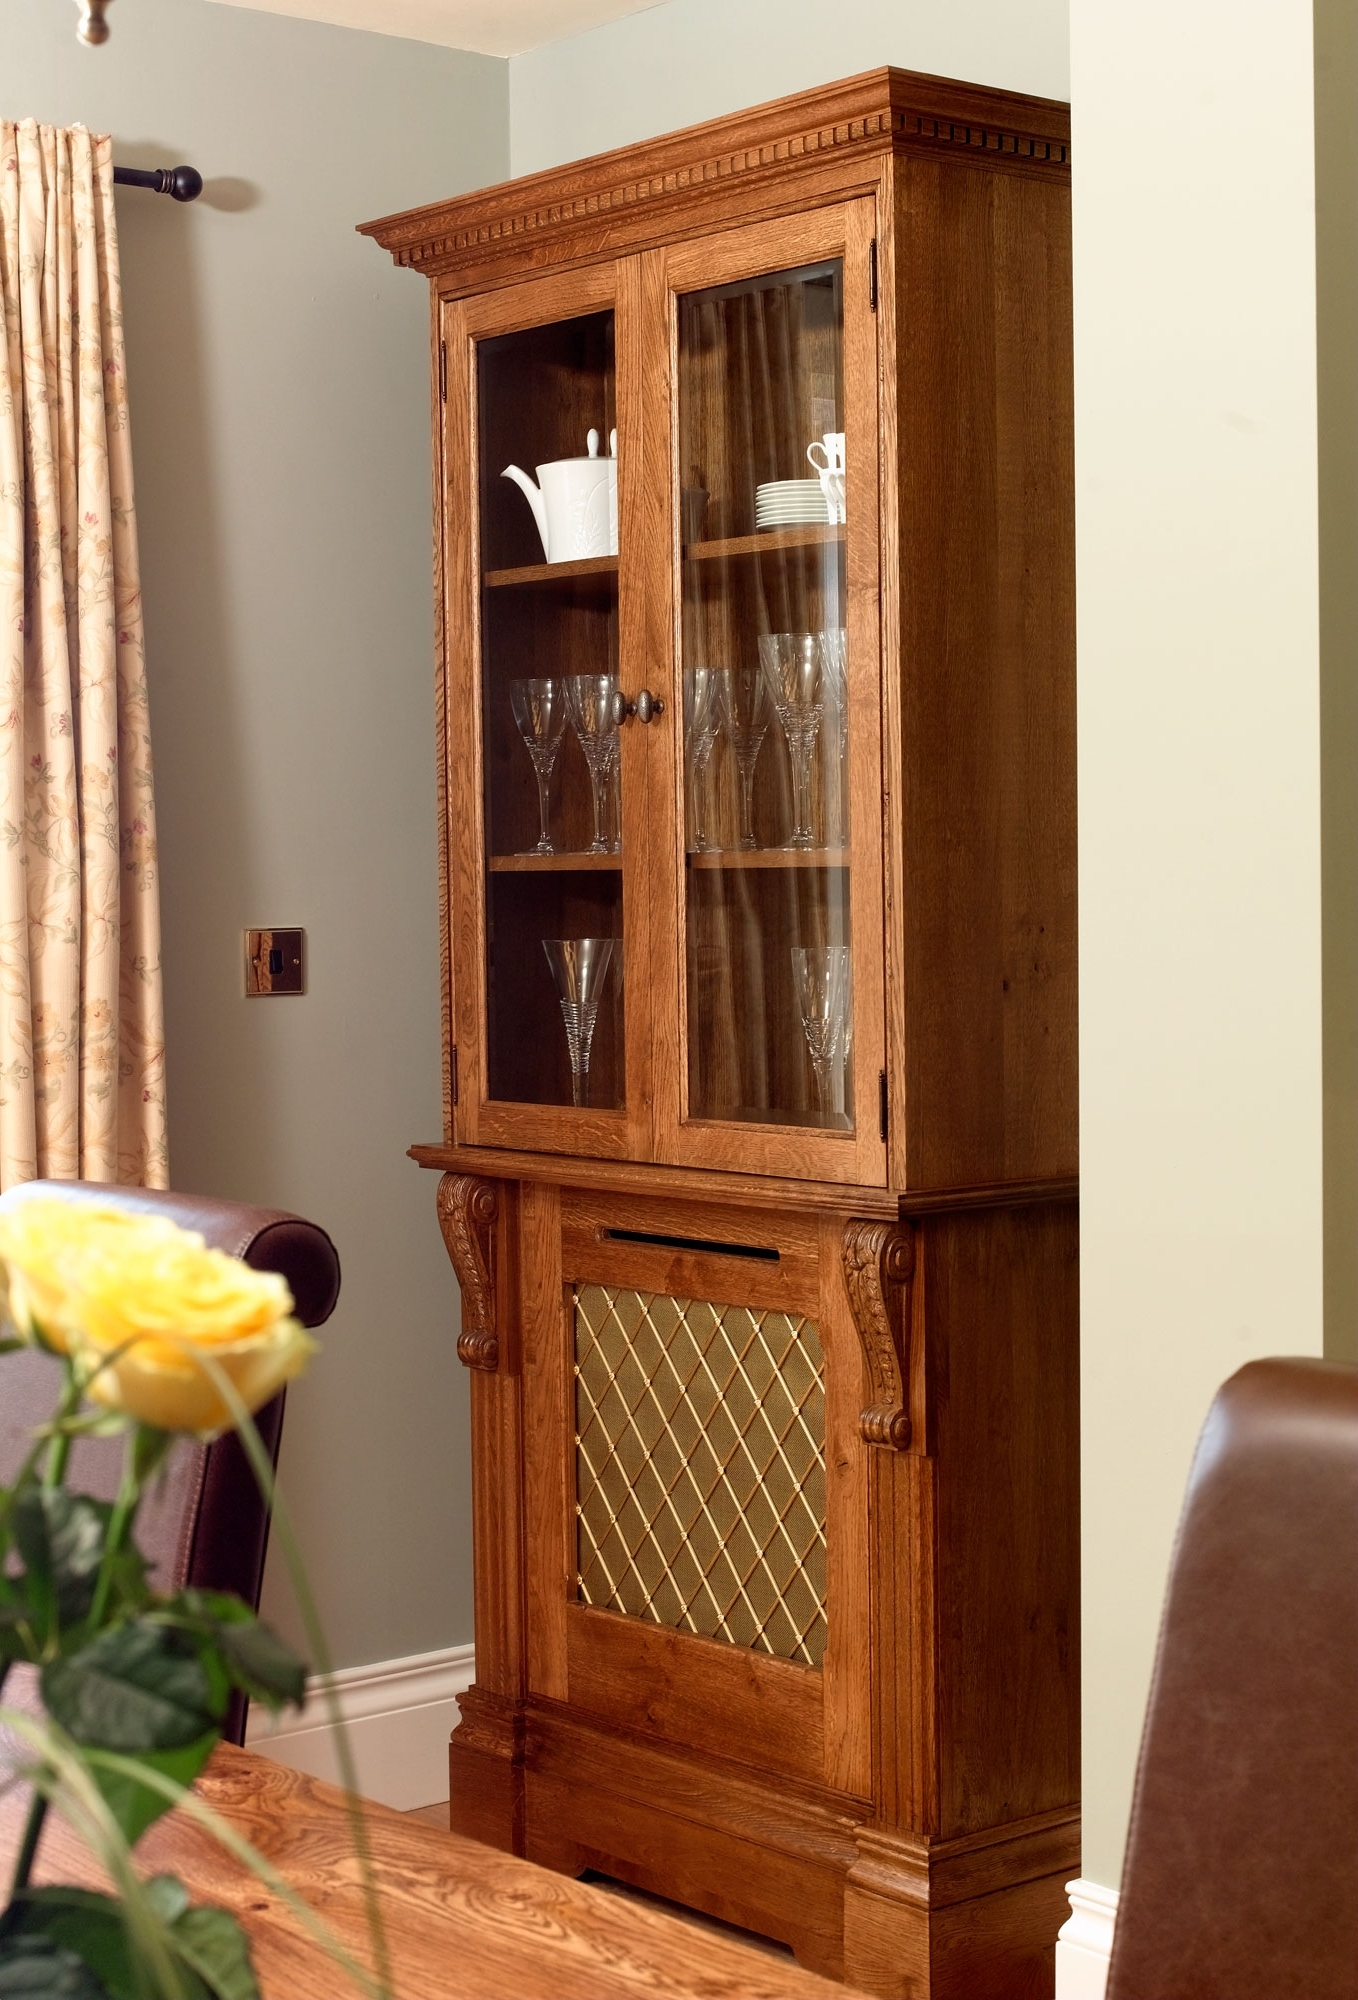 Bookcases – Radiator Cabinets – Radiator Covers With Bookcase Throughout Recent Radiator Cover Bookshelves (View 3 of 15)